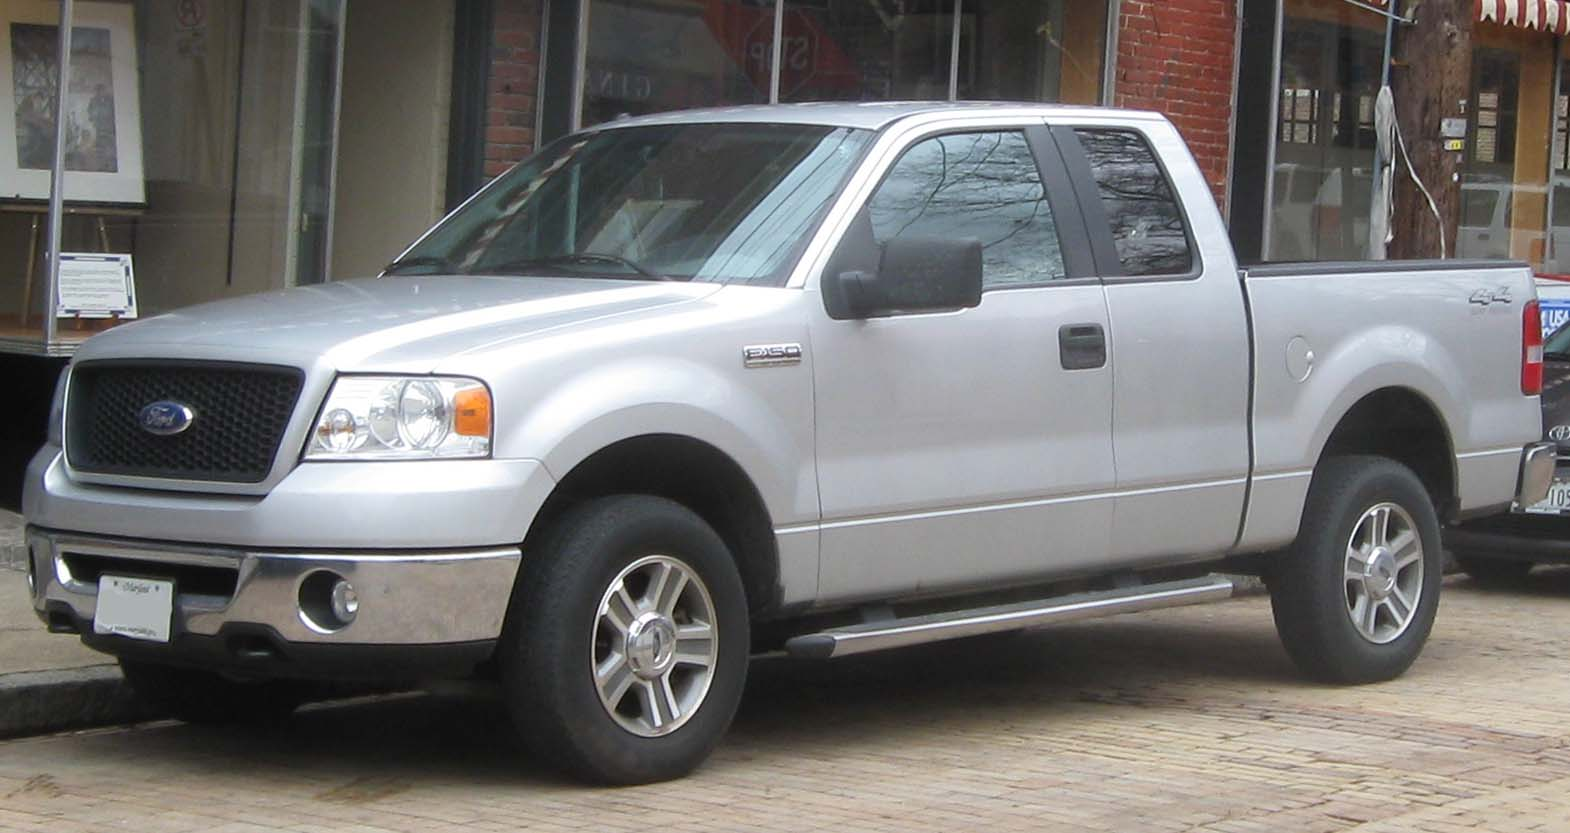 file ford f 150 extended cab 03 03 wikipedia the free. Black Bedroom Furniture Sets. Home Design Ideas